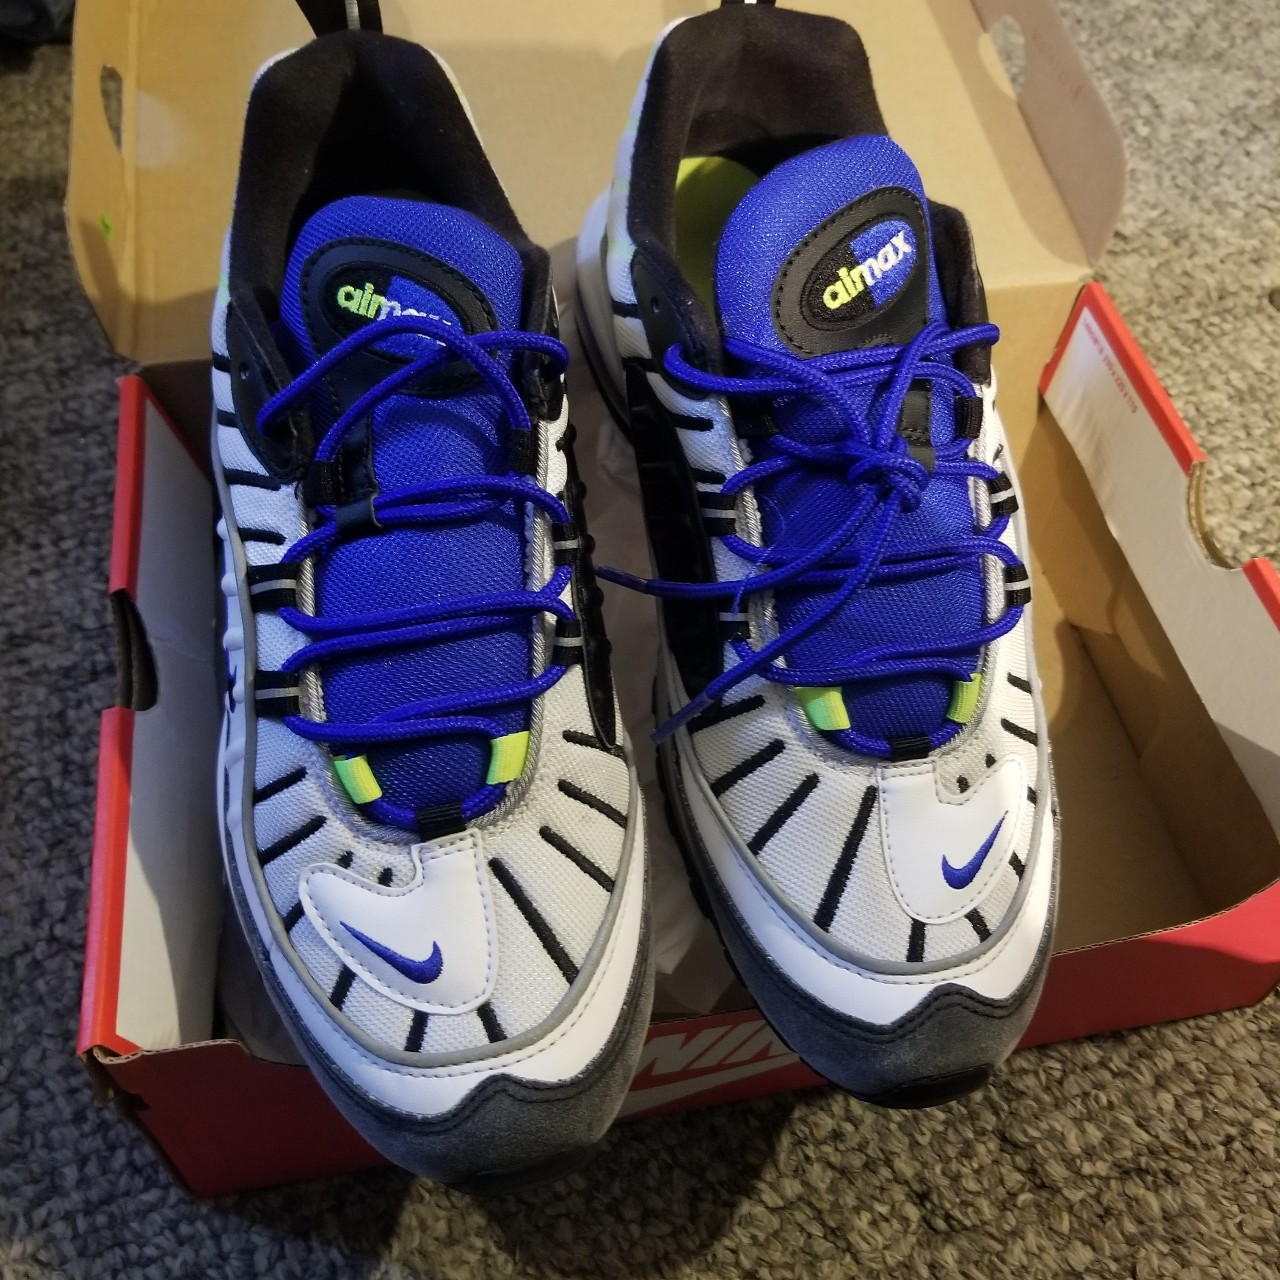 Nike Air Max 98 plus 9/10 Comes with